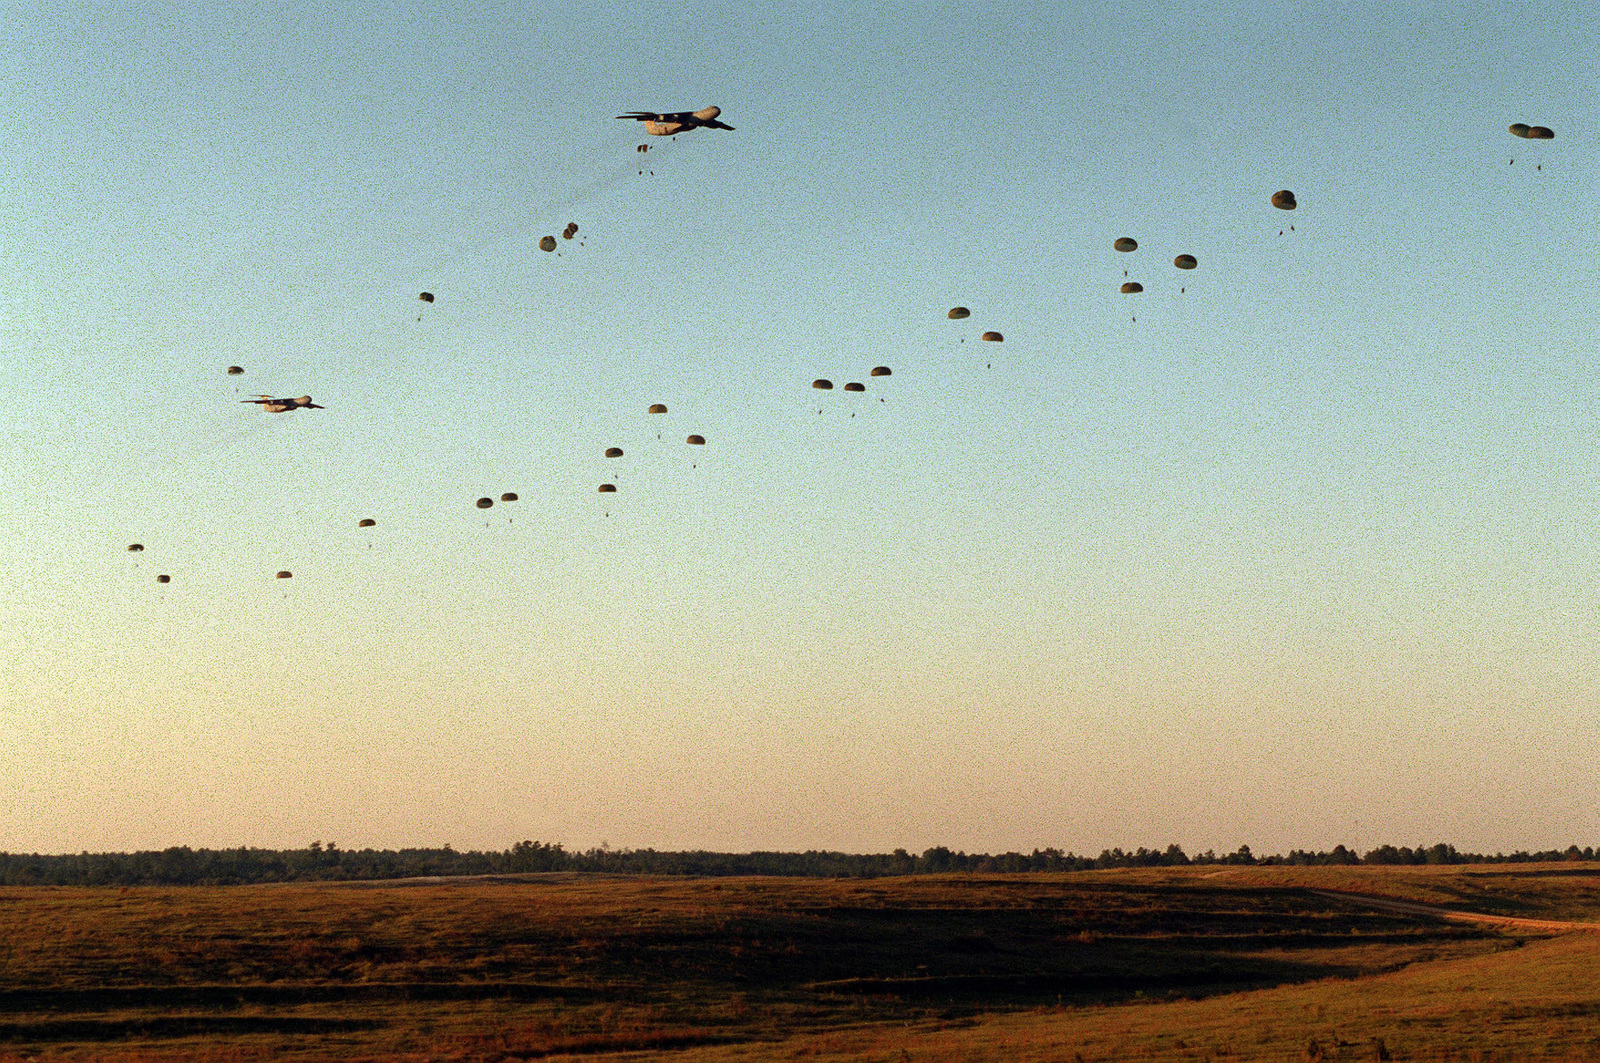 The sky rains paratroopers as soldier from the 82nd Airborne Division jump from a US Air Force C-141 Starlifter into the Joint Readiness Training Center (JRTC)